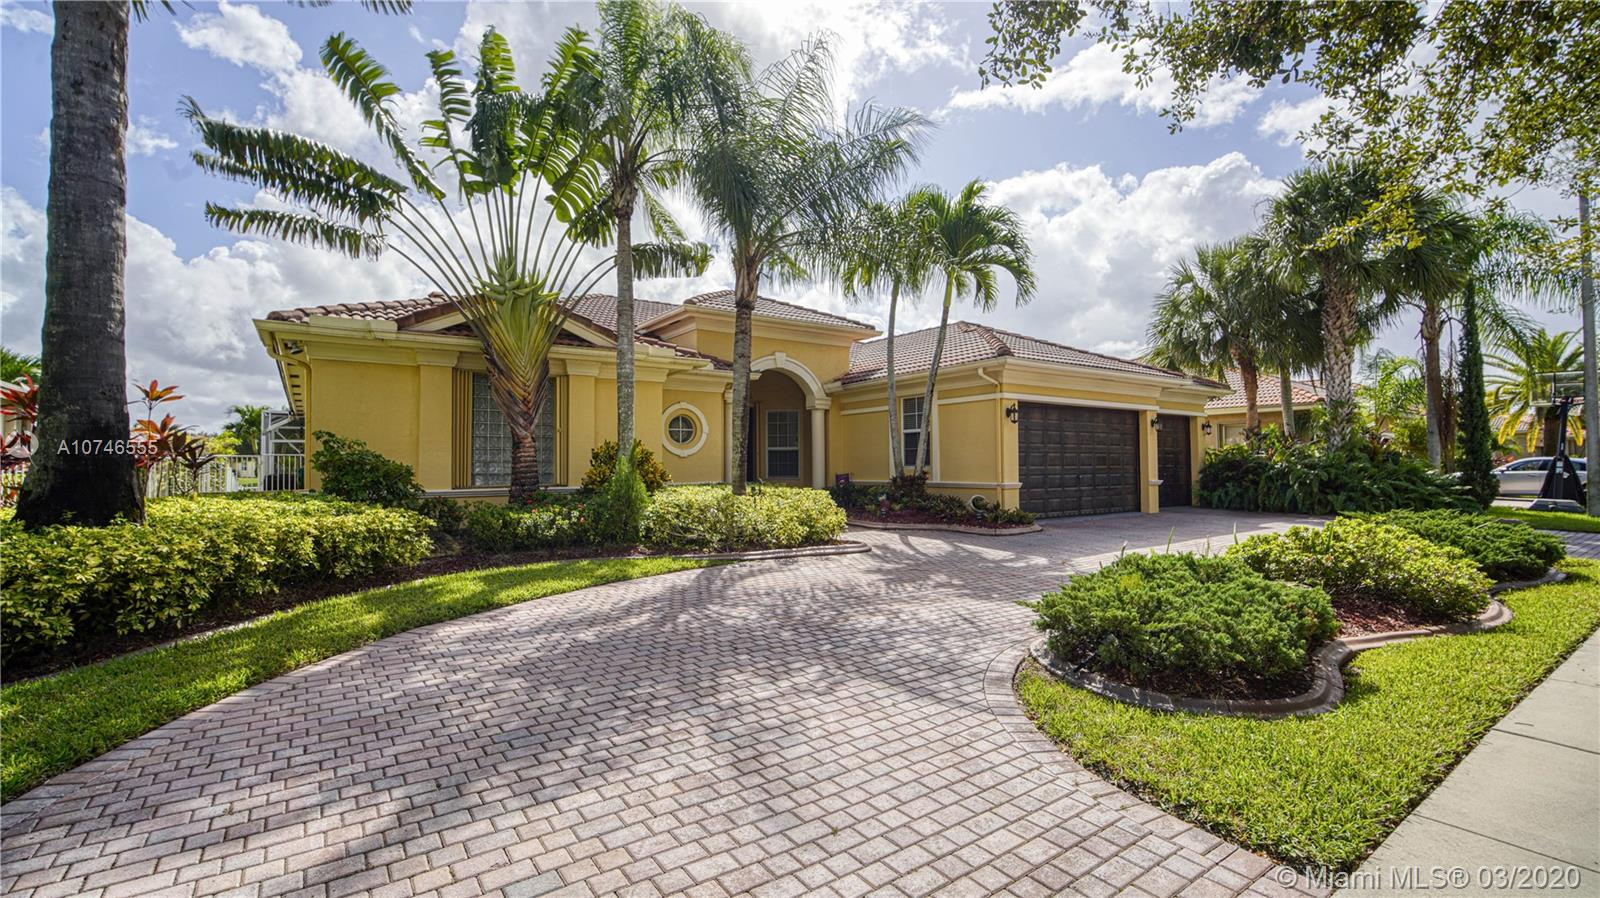 Property for sale at 5058 Lakewood Dr, Cooper City,  Florida 33330